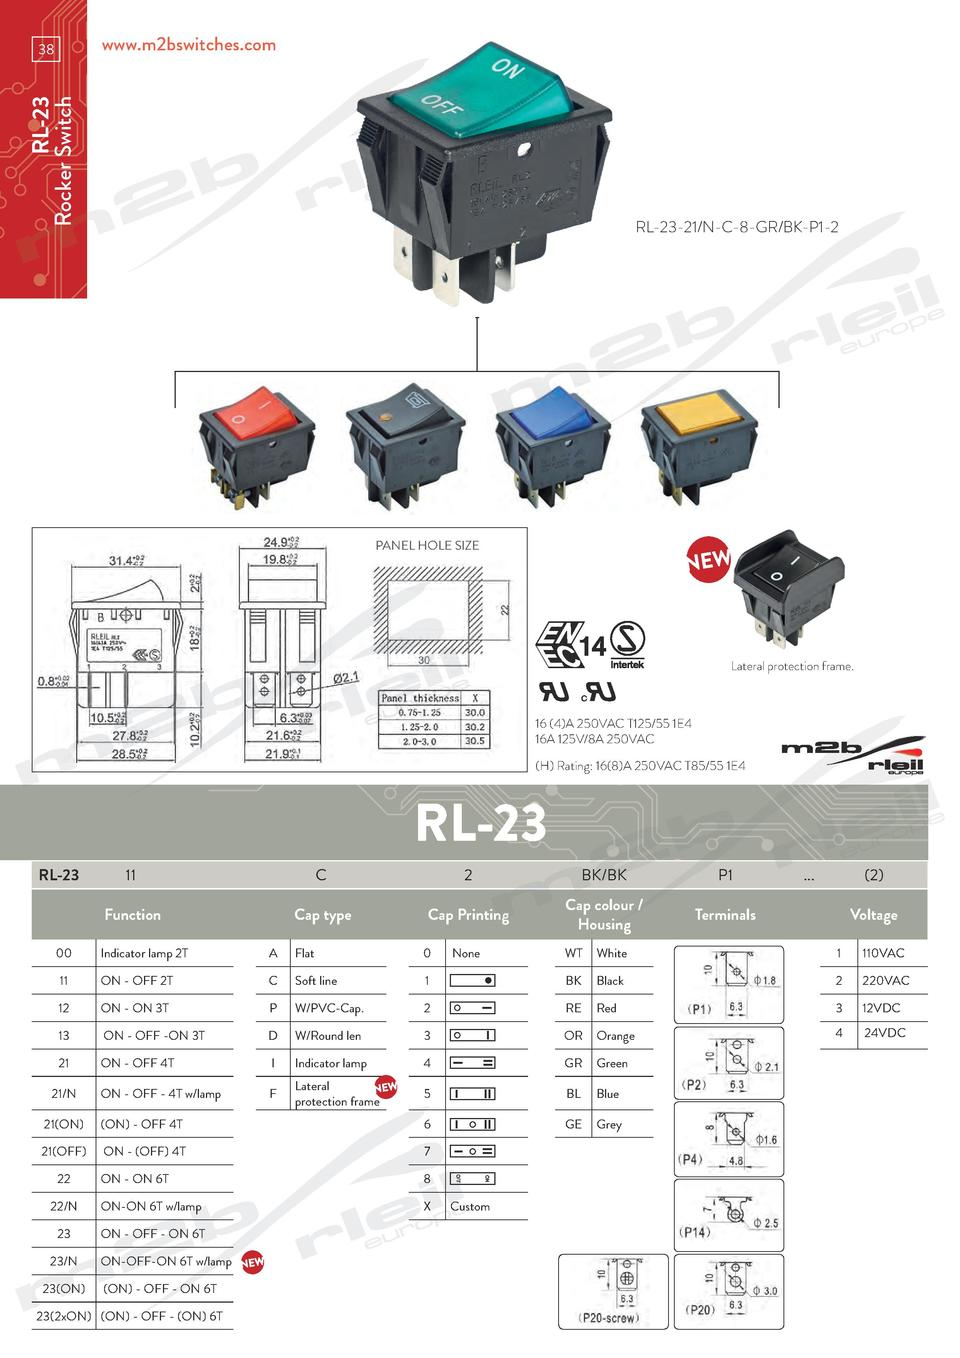 www.m2bswitches.com  RL-23 Rocker Switch  38  RL-23-21 N-C-8-GR BK-P1-2  PANEL HOLE SIZE  Lateral protection frame.  16  4...